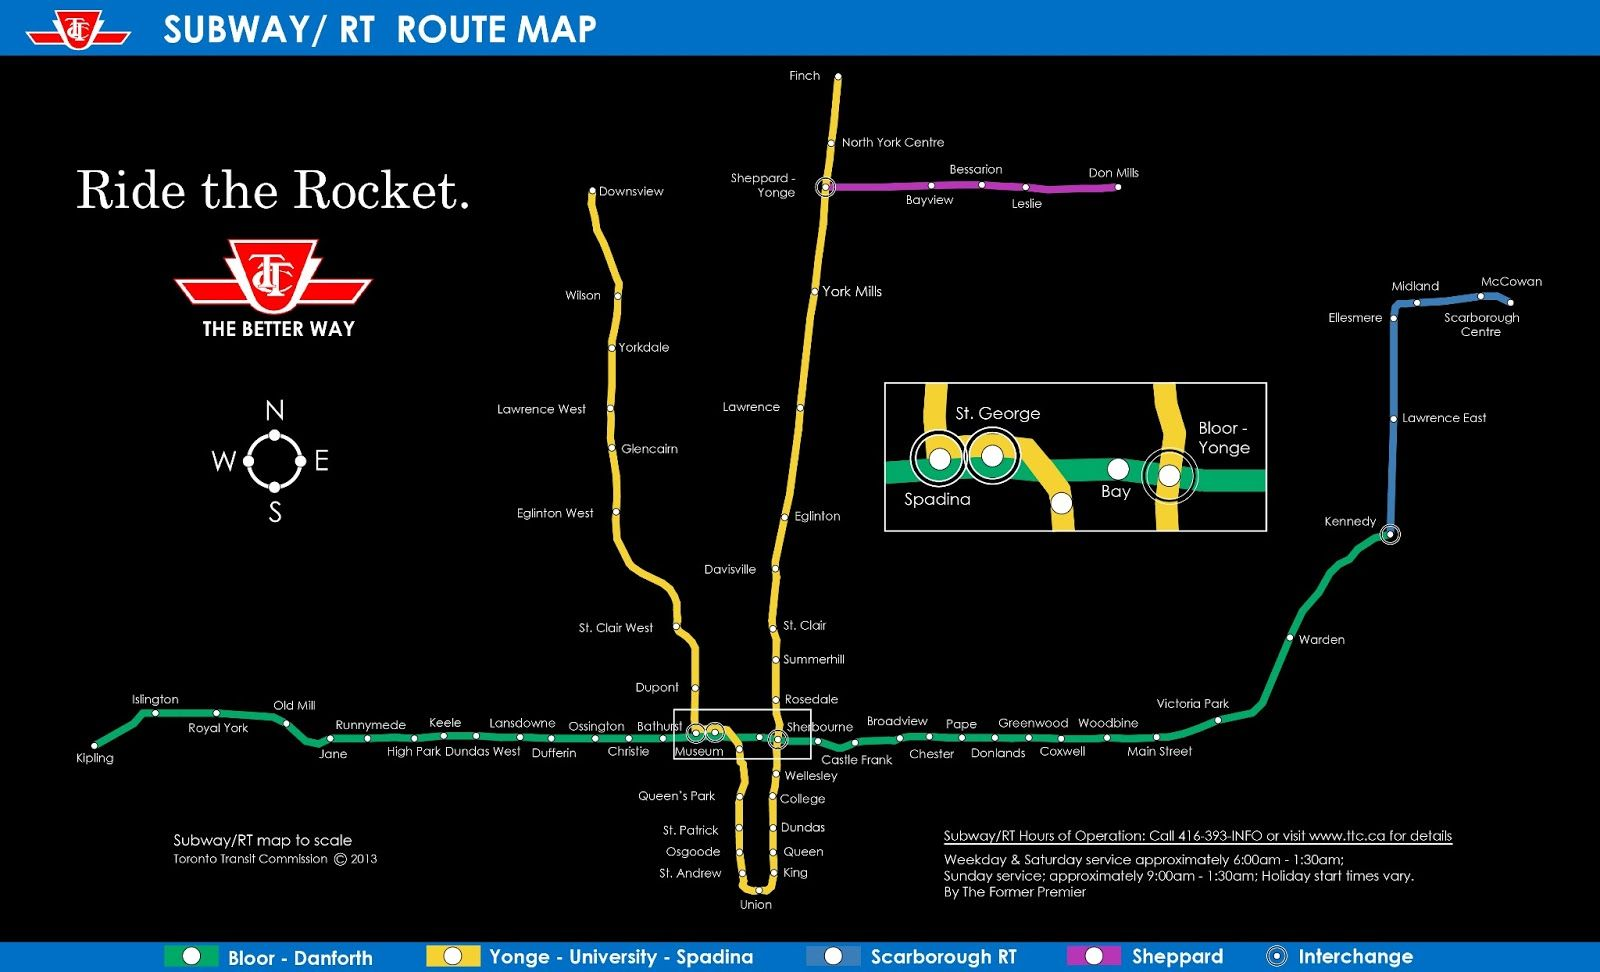 Bloor Danforth Subway Map.Ttc Subway Map To Scale Infographics Subway Map Scale Map